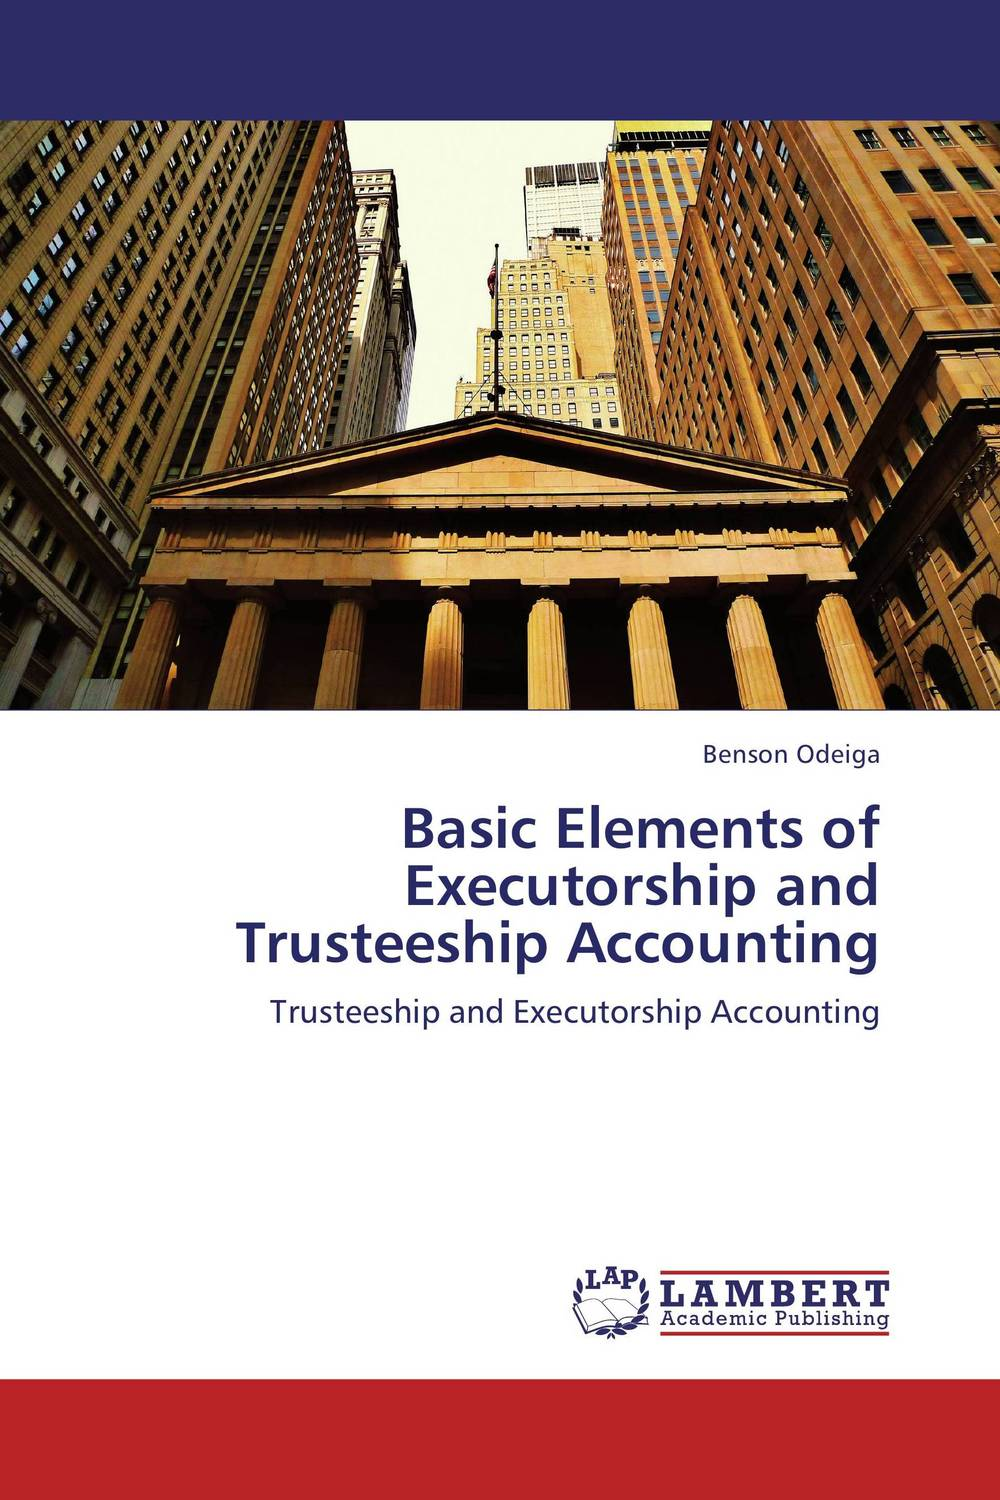 Basic Elements of Executorship and Trusteeship Accounting on the distribution of information structures and focal points